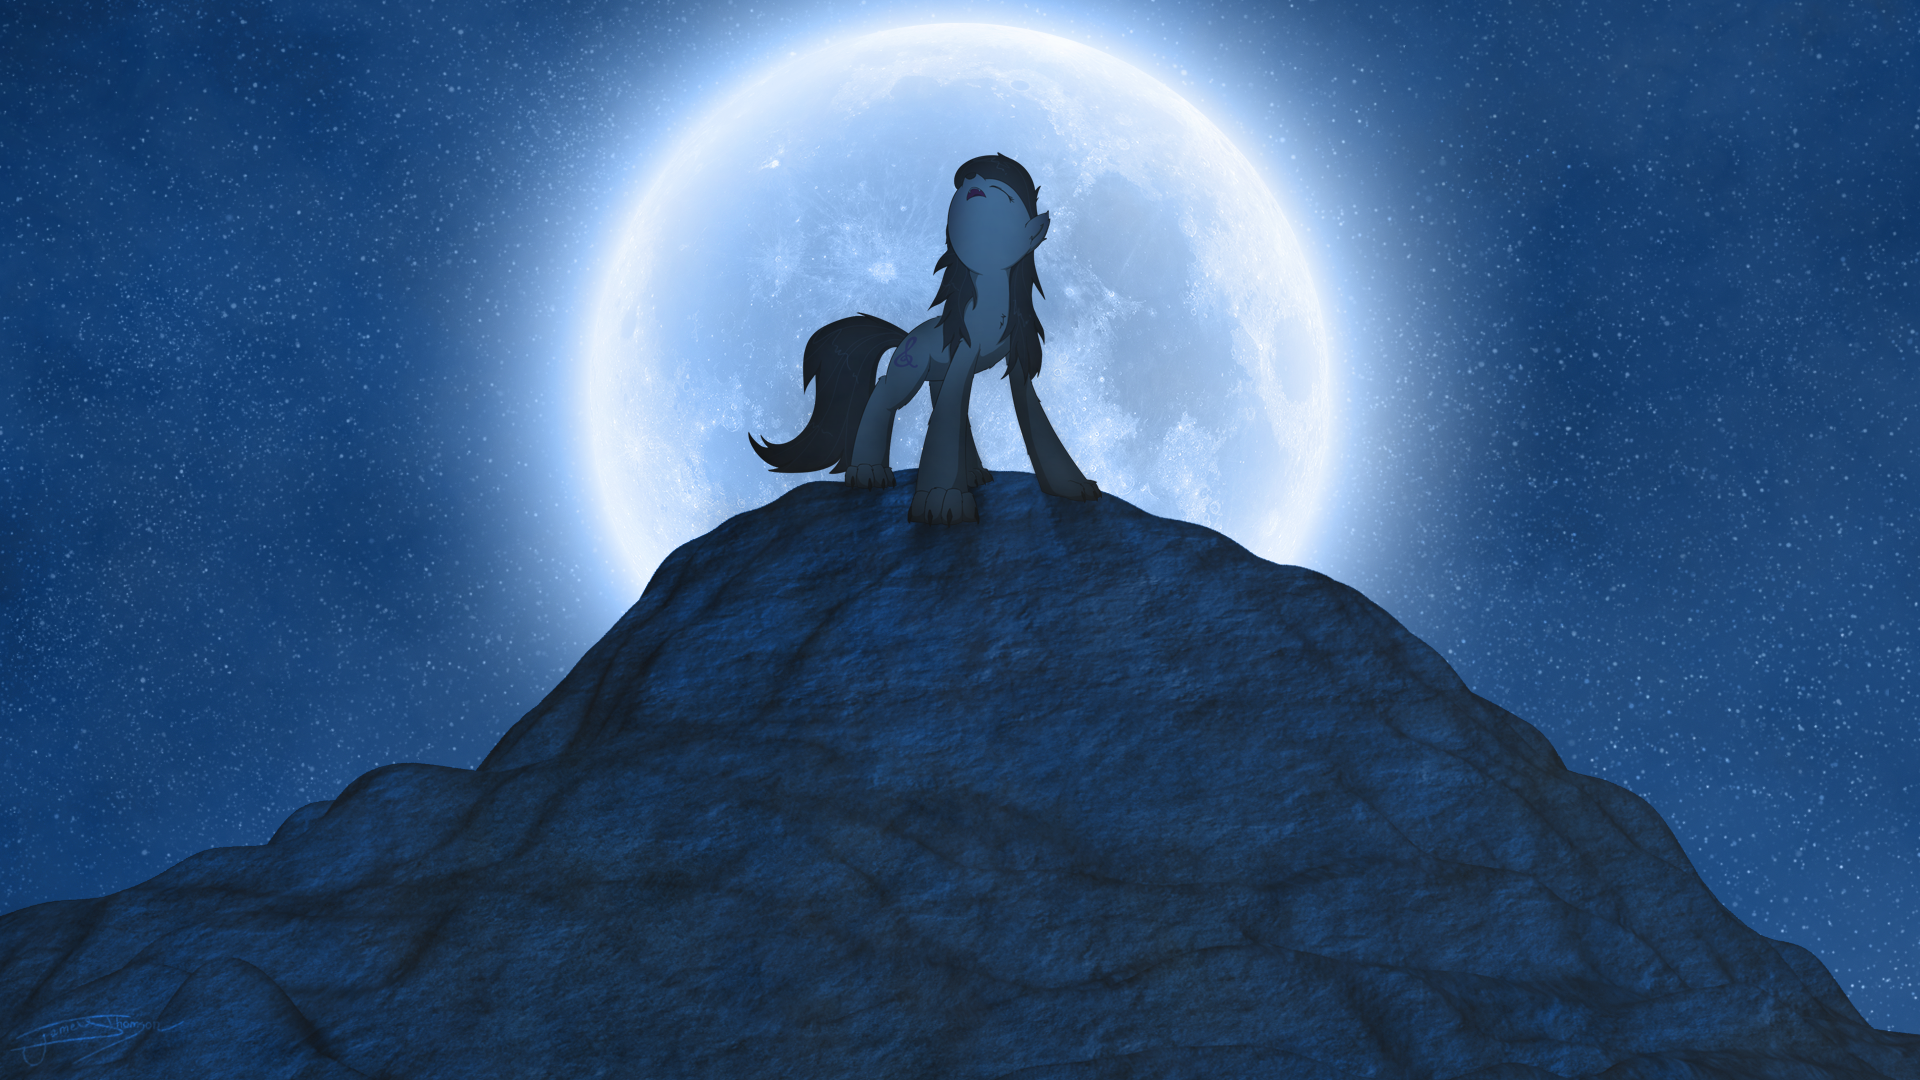 The Curse of Harmonic Moonlight by Jamey4 and Muffinsforever